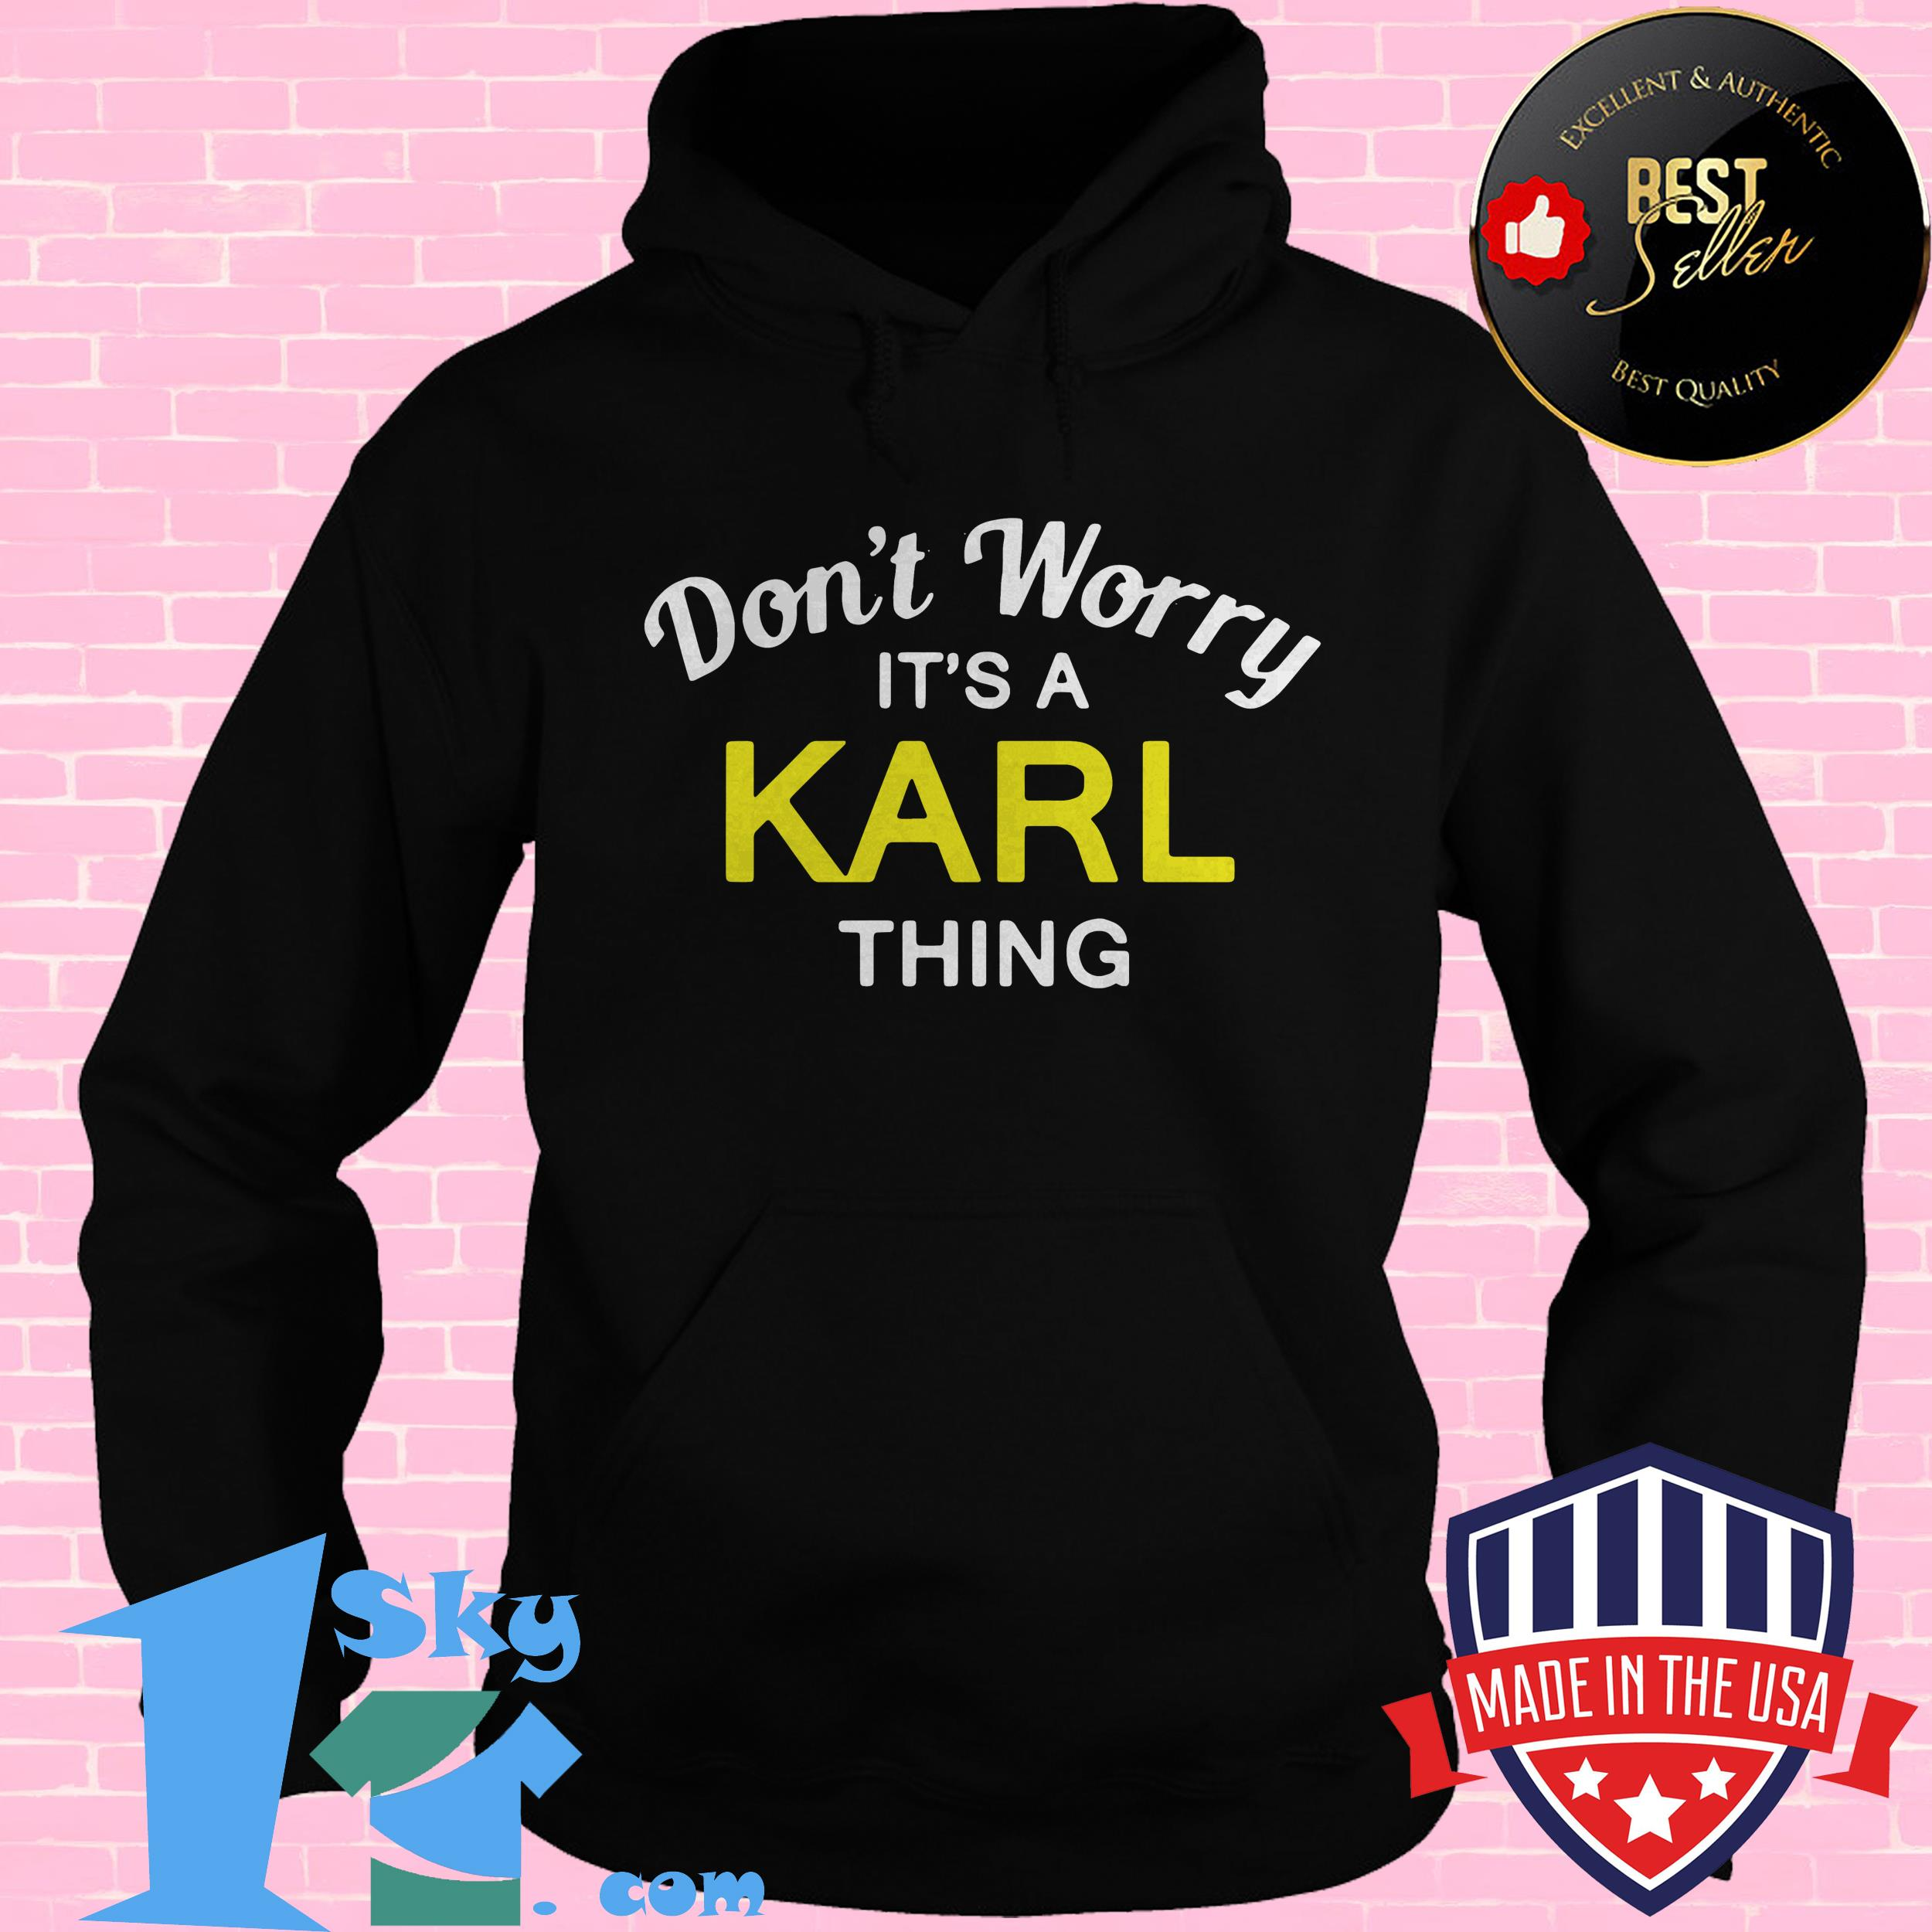 dont worry its a karl thing hoodie - Don't Worry It's a Karl Thing shirt